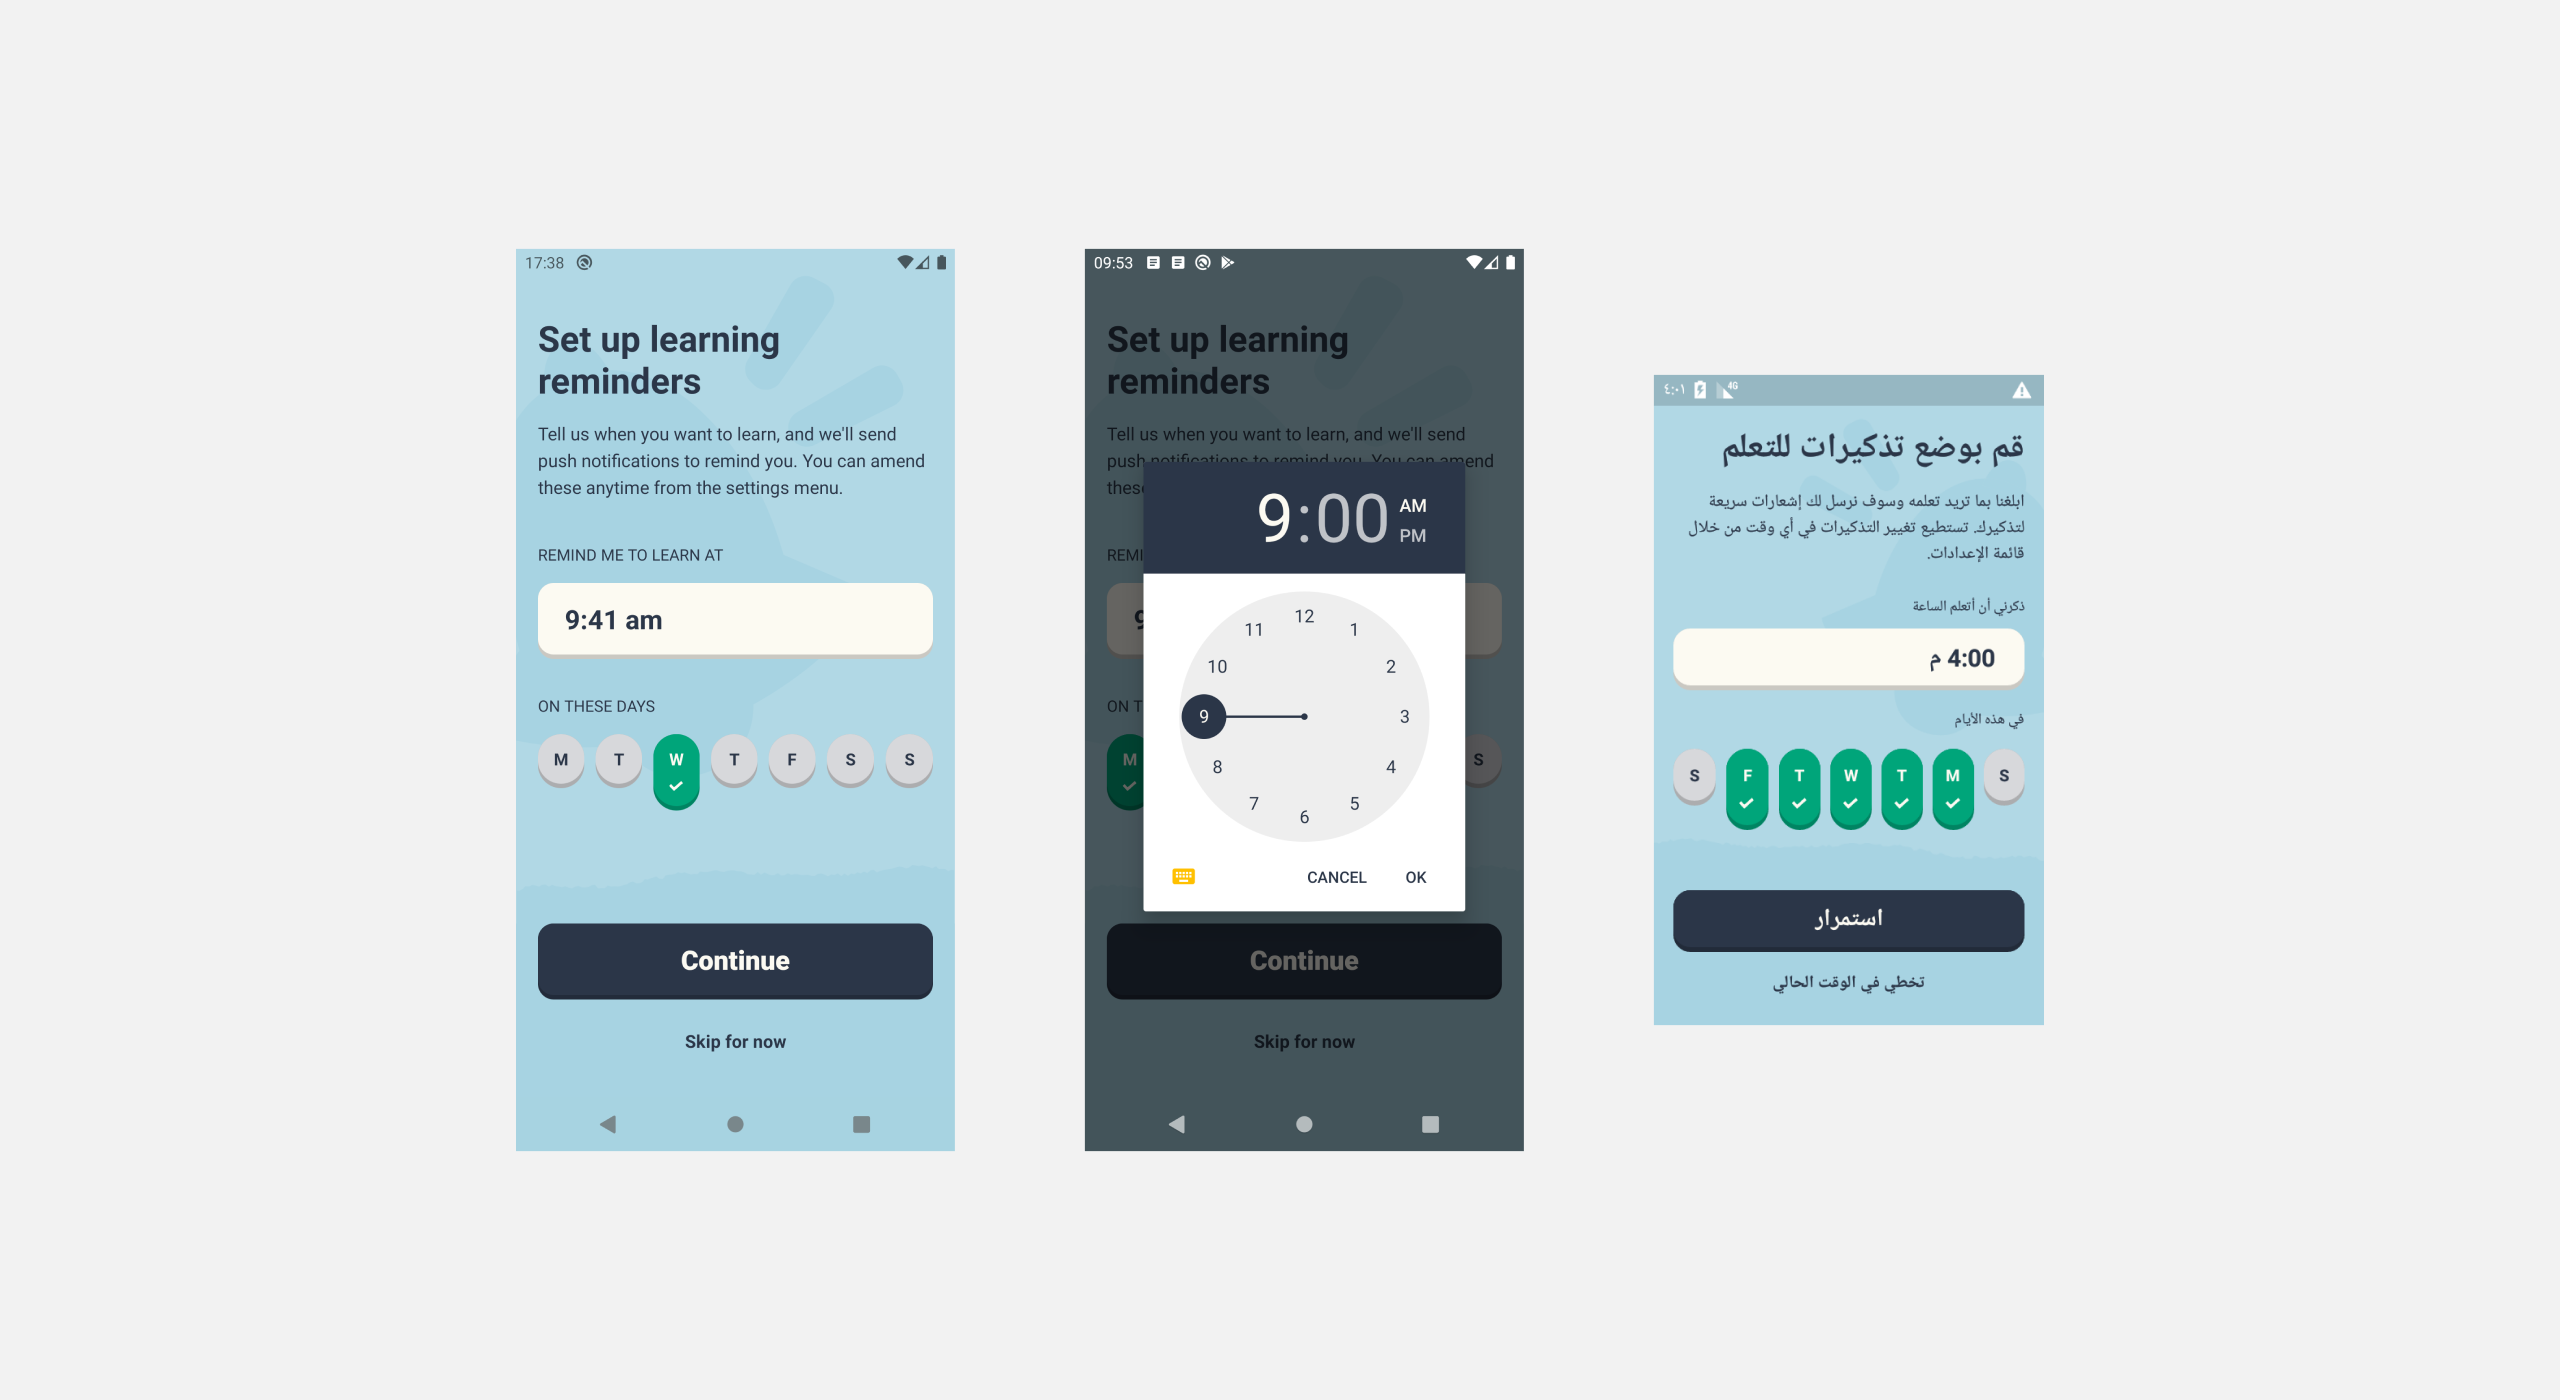 Android builds ready for testing, including RTL version for Arabic.